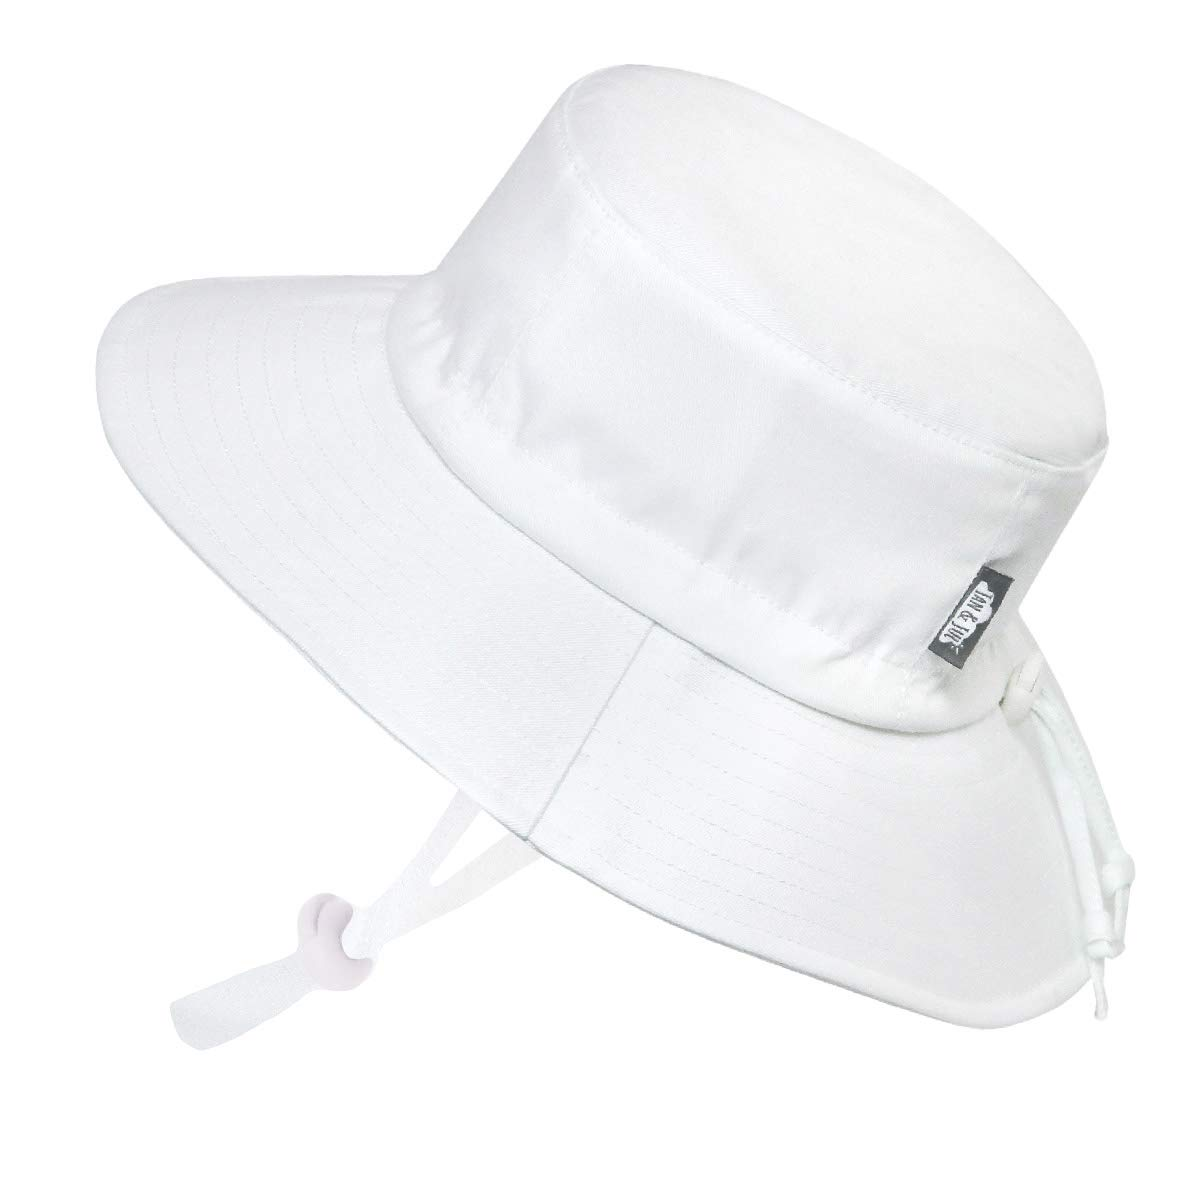 e44b77ea56bce0 Kids Summer Quick Dry Swim Sun Hats 50 UPF, Adjustable Foldable Packable  (XL: 3-12Y, White): Amazon.in: Beauty